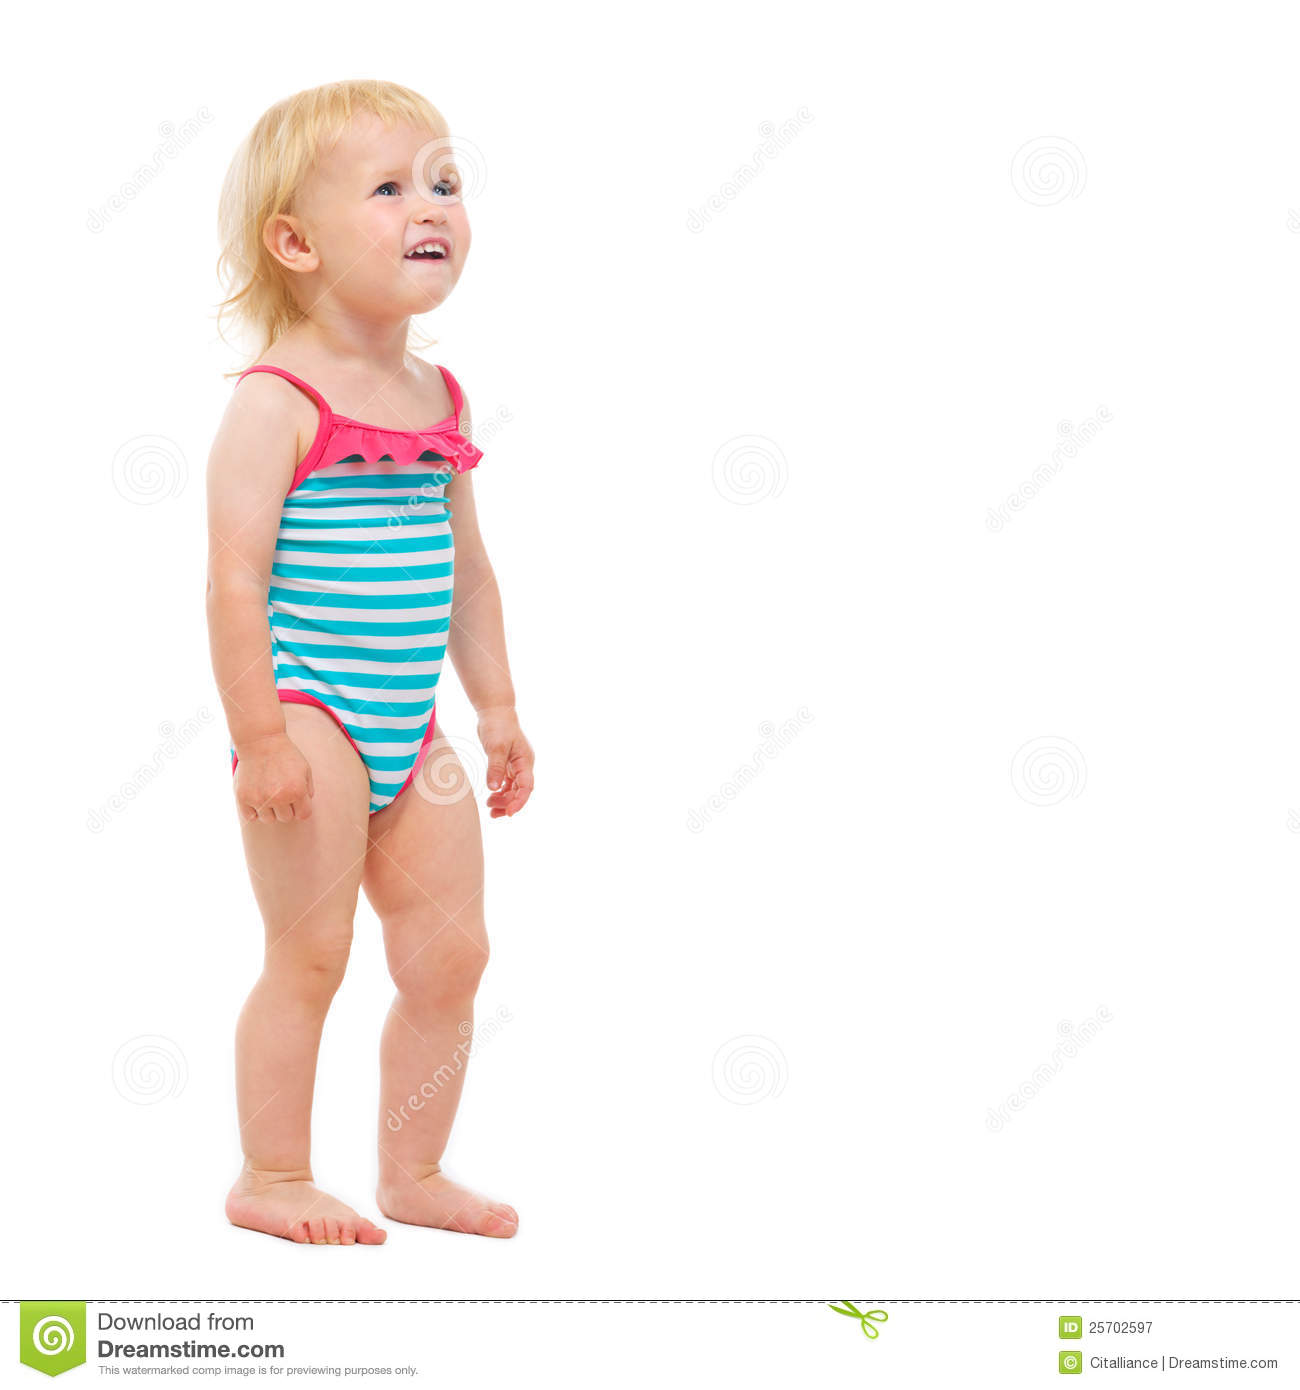 Find great deals on eBay for infant girls swimsuit. Shop with confidence.